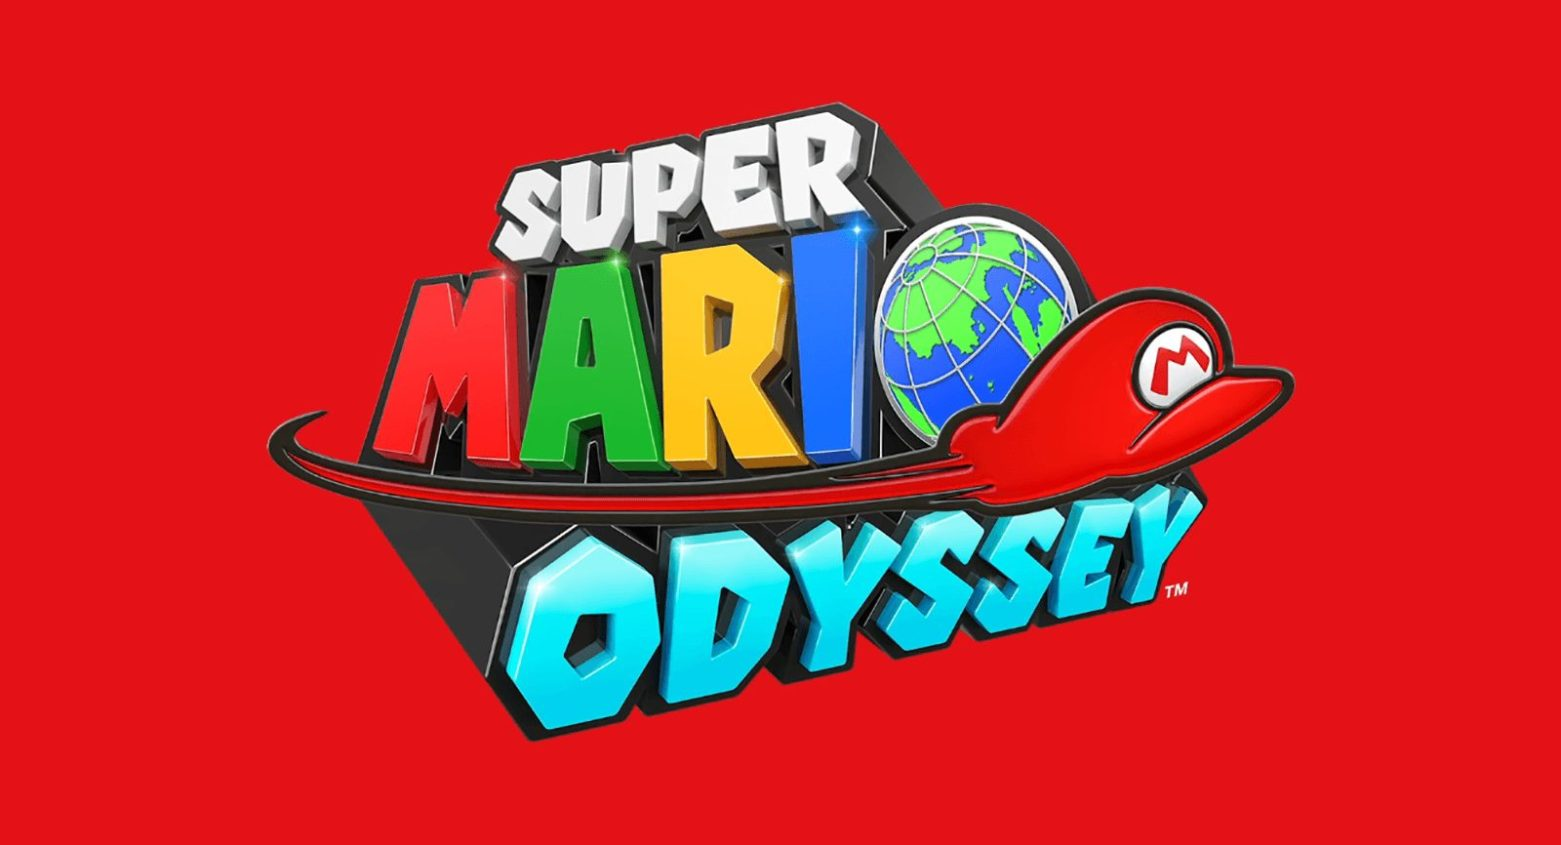 Super Mario Odyssey Trailer Analysis Comedyngaming